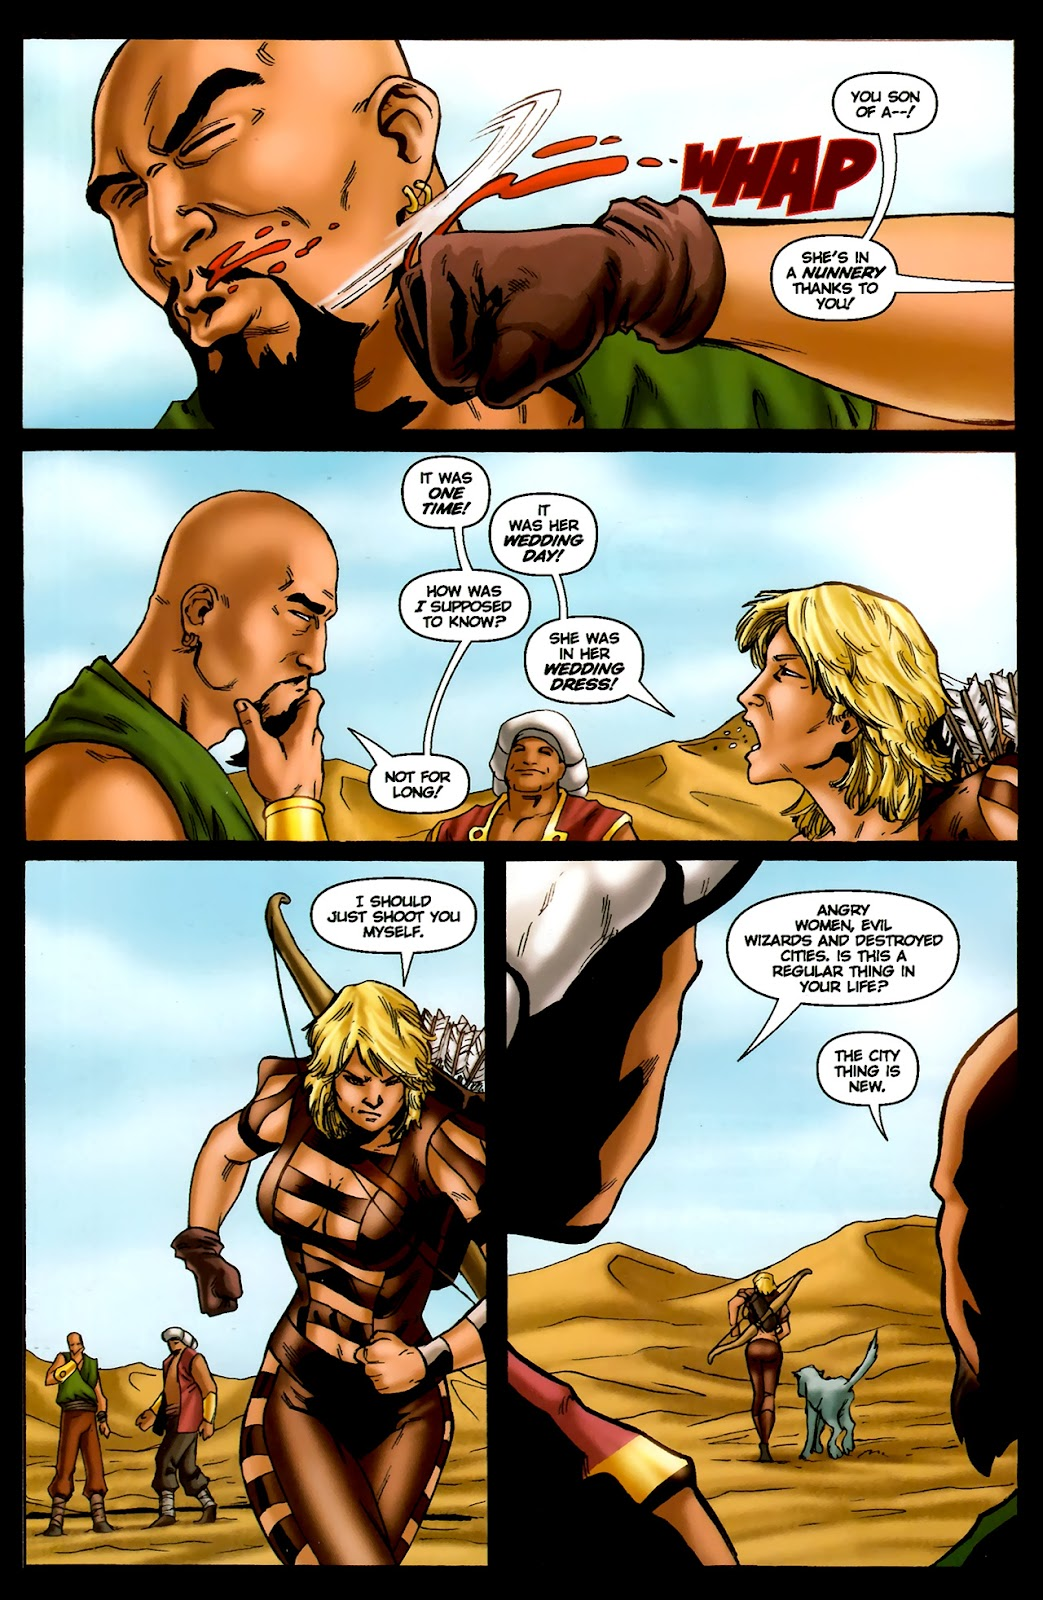 1001 Arabian Nights: The Adventures of Sinbad Issue #13 Page 24